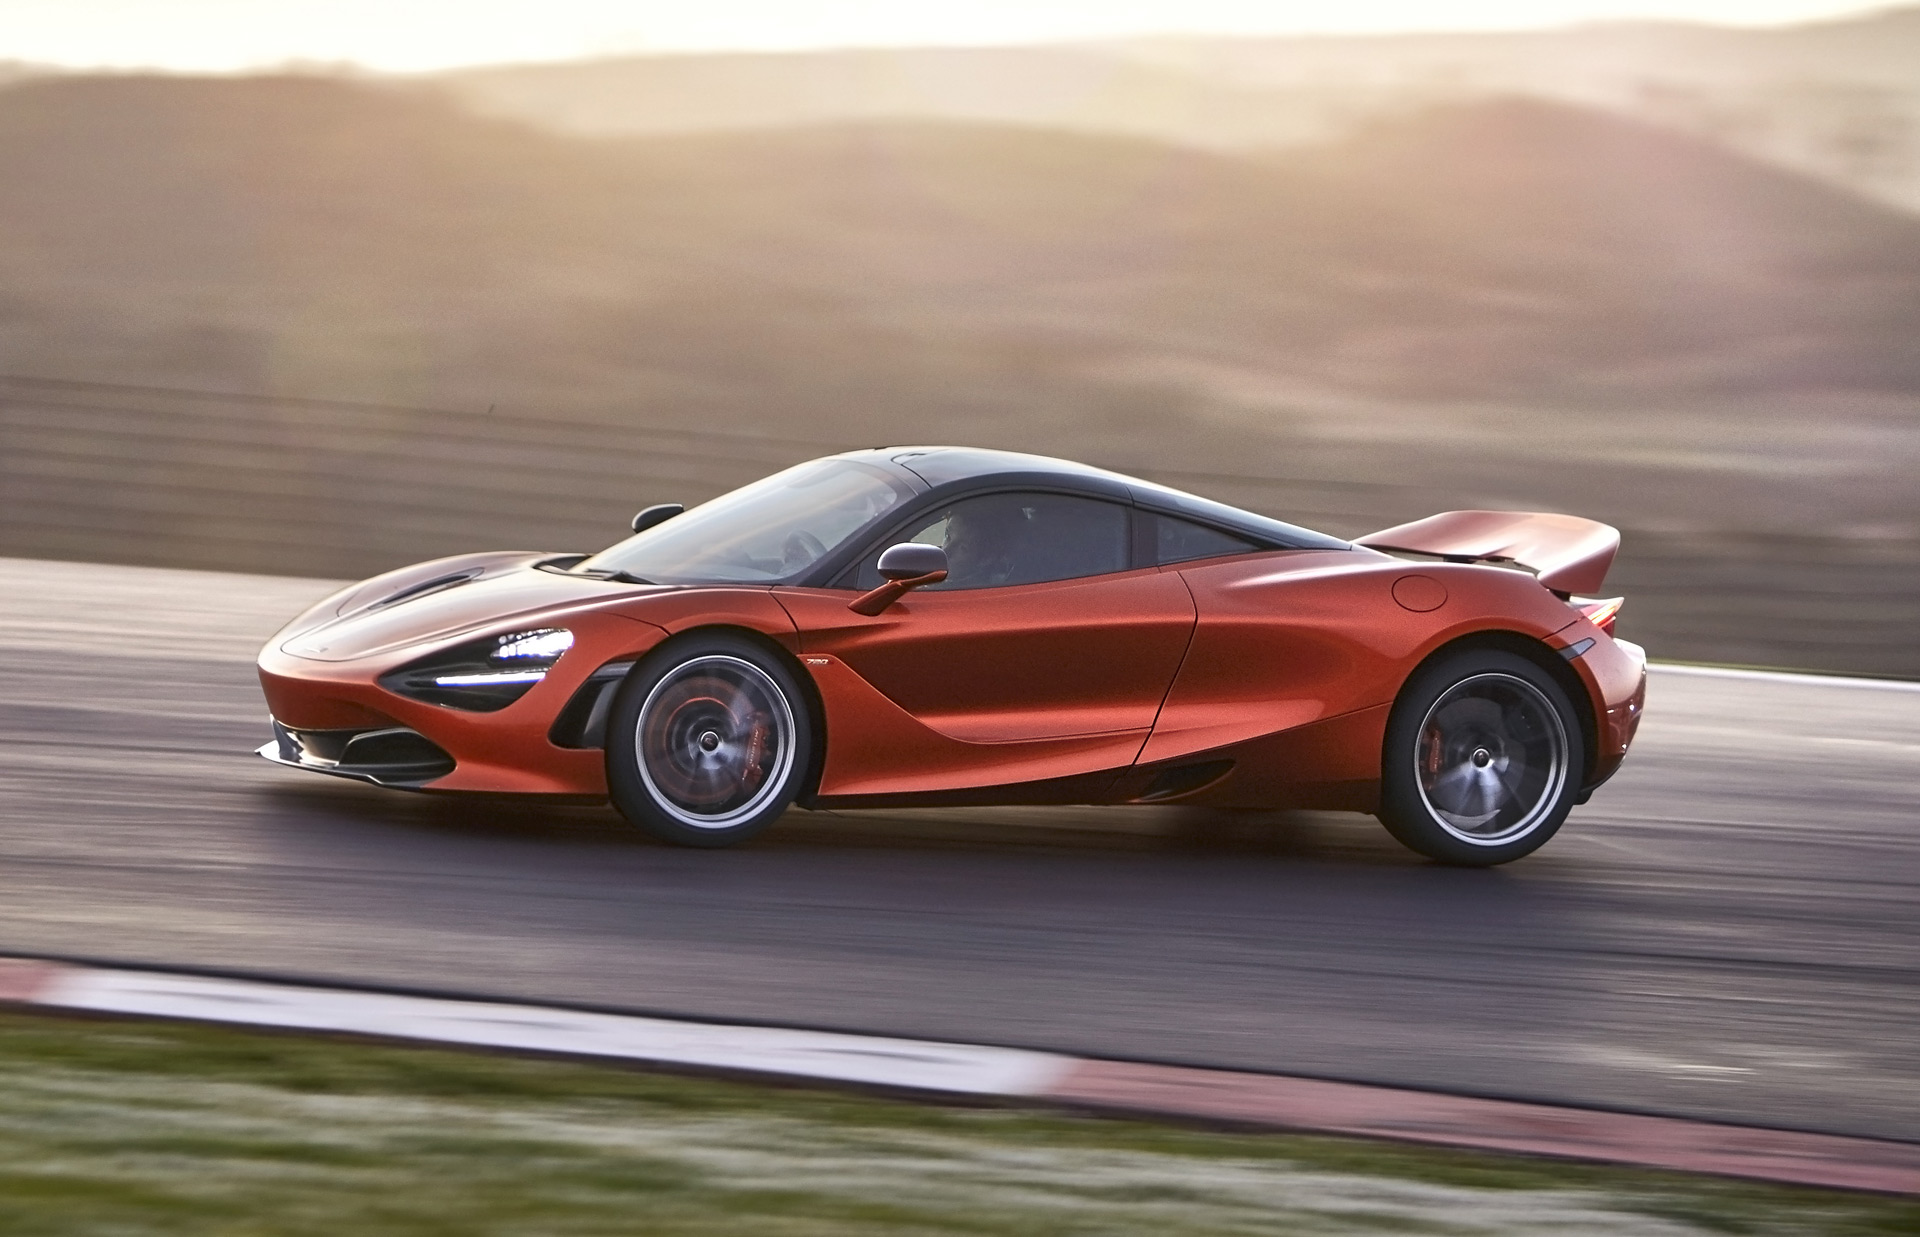 Future McLarens may go AWD to cope with power increases